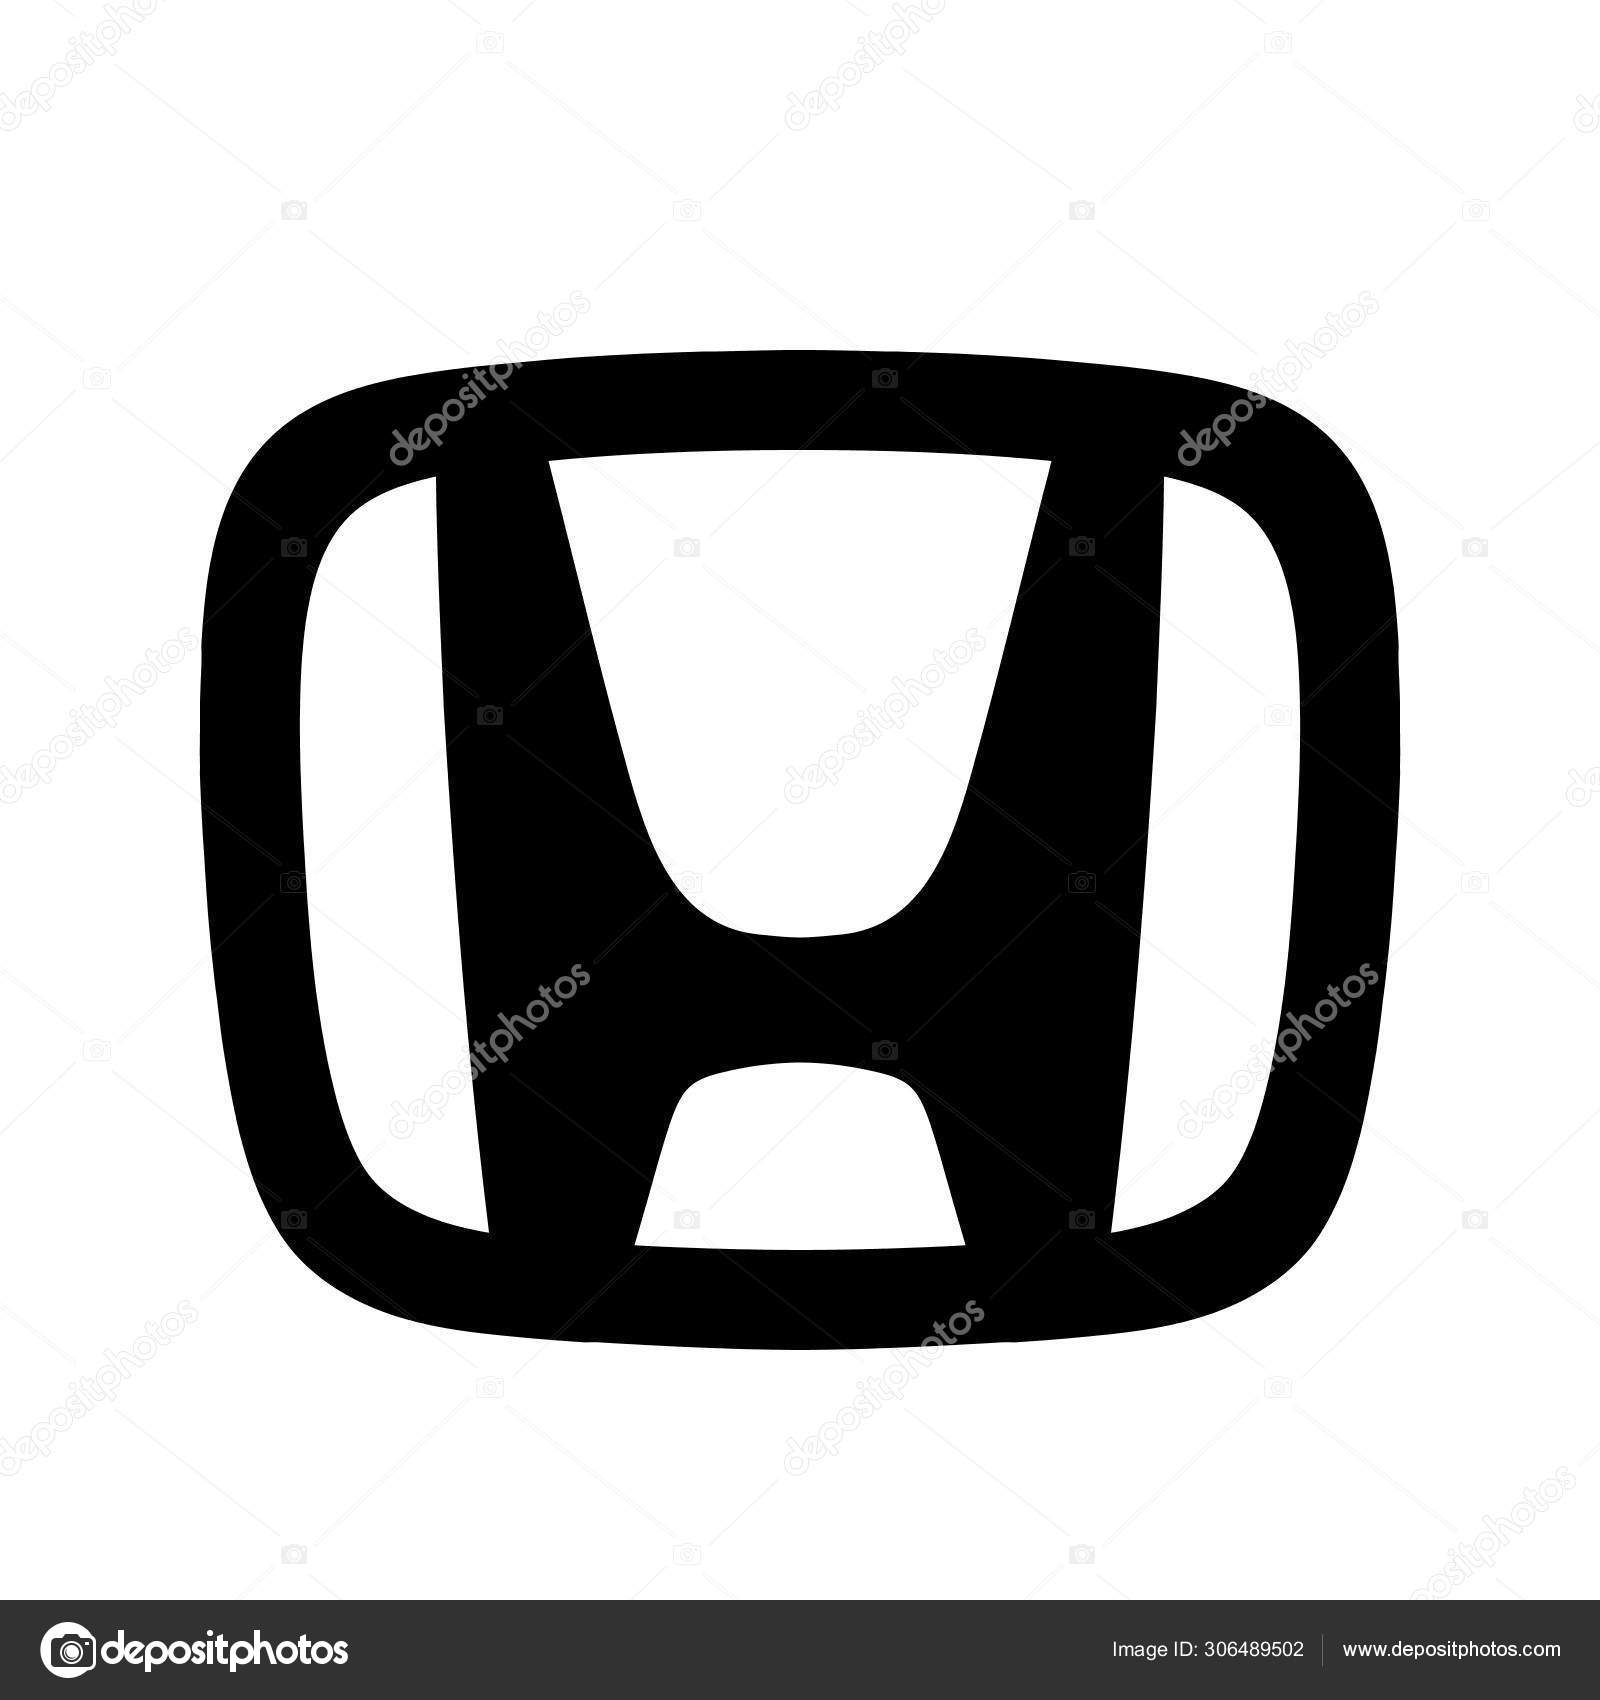 Honda Web Icon Simple Illustration Stock Vector C Iconscout 306489502 To dream the impossible and. https depositphotos com 306489502 stock illustration honda web icon simple illustration html